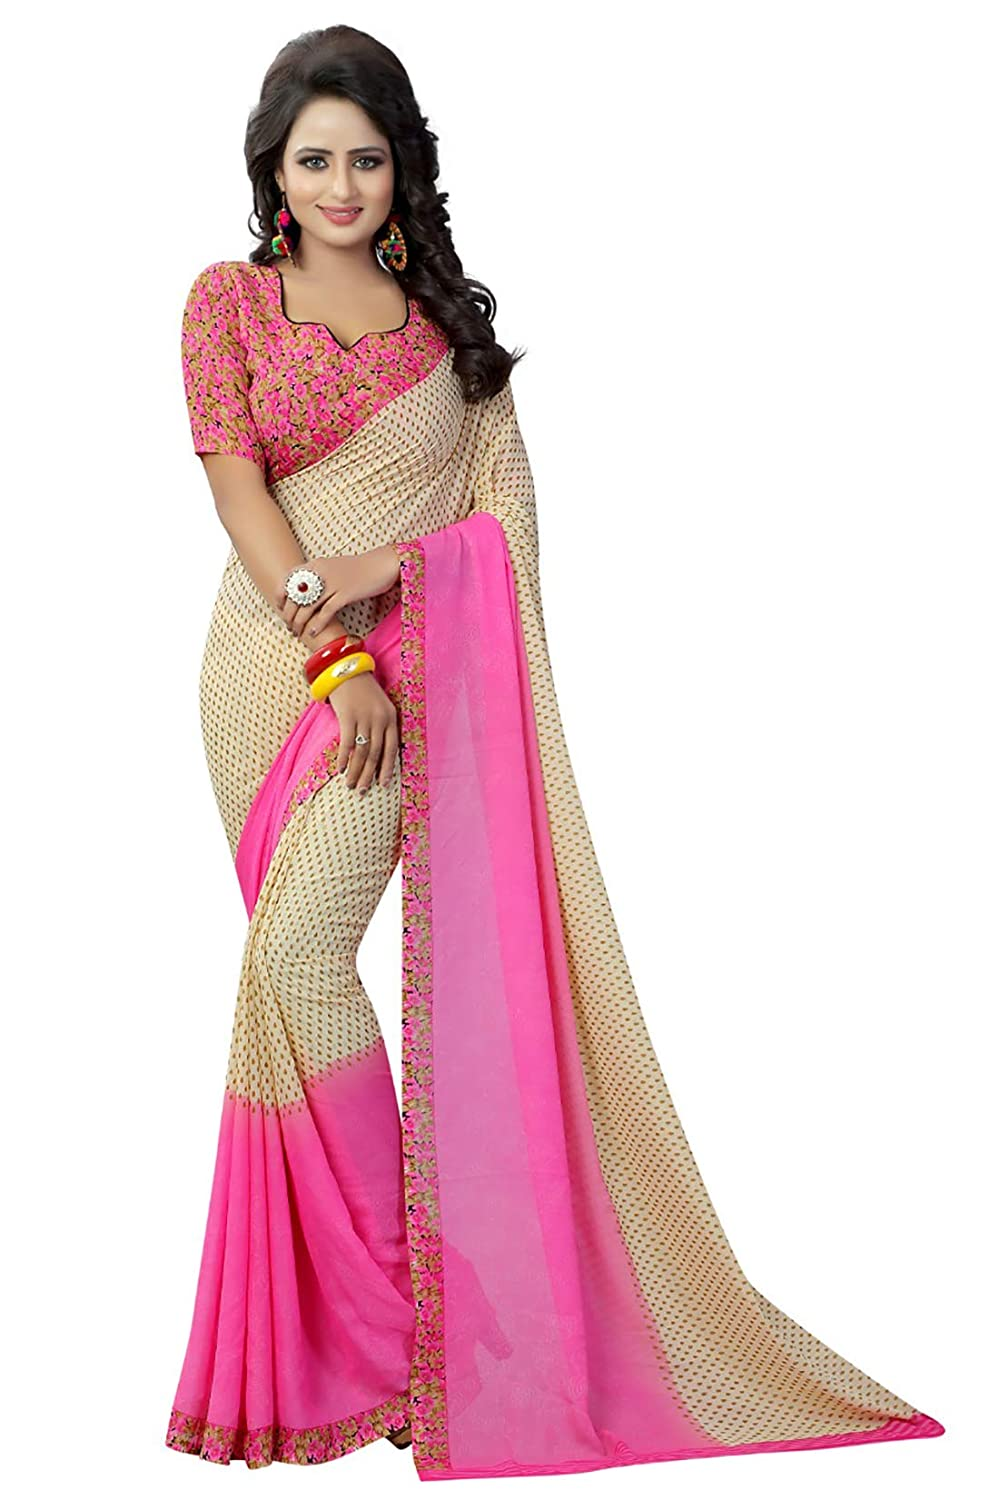 55a77ea80f Aarna Women's Beige and Pink Faux Georgette Printed Saree with Blouse  Piece: Amazon.in: Clothing & Accessories